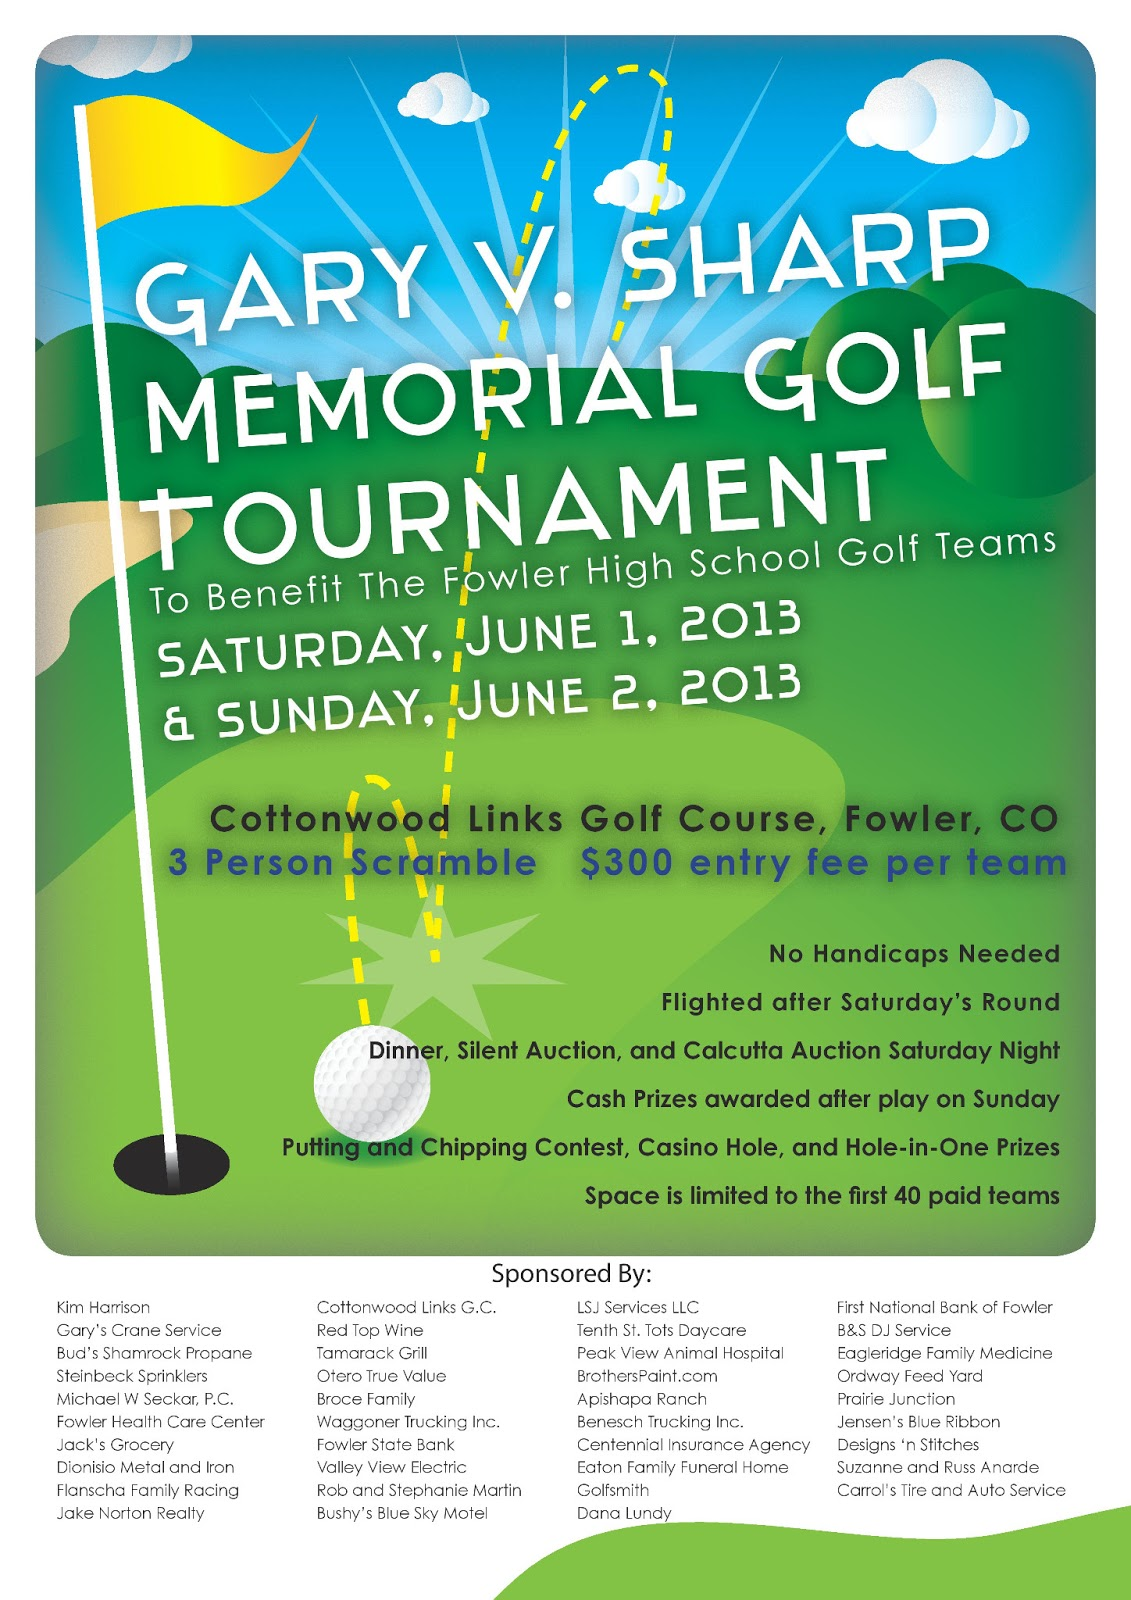 Gary V. Sharp Memorial Golf Tournament: Tournament Flyer created by Dana Lundy